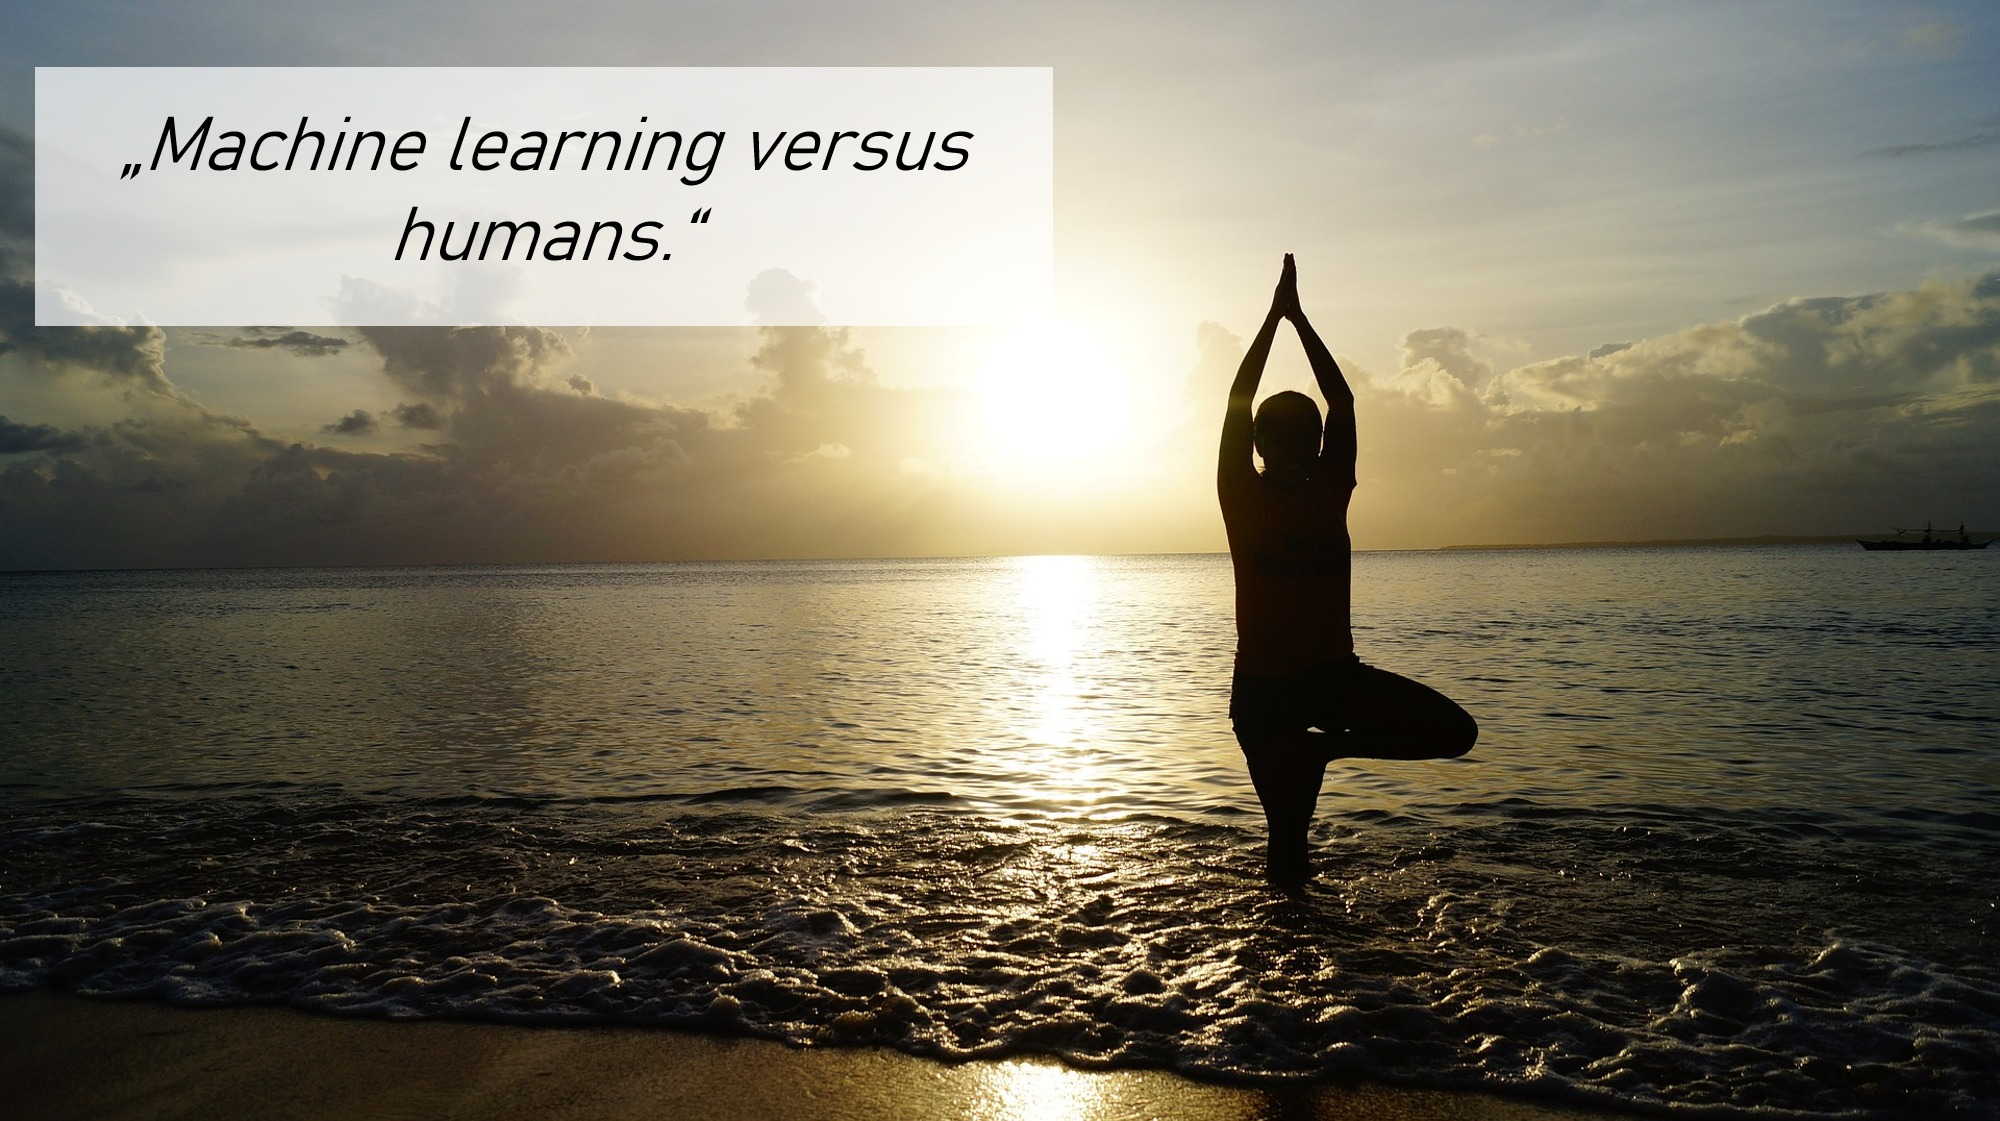 AI machine learning versus humans